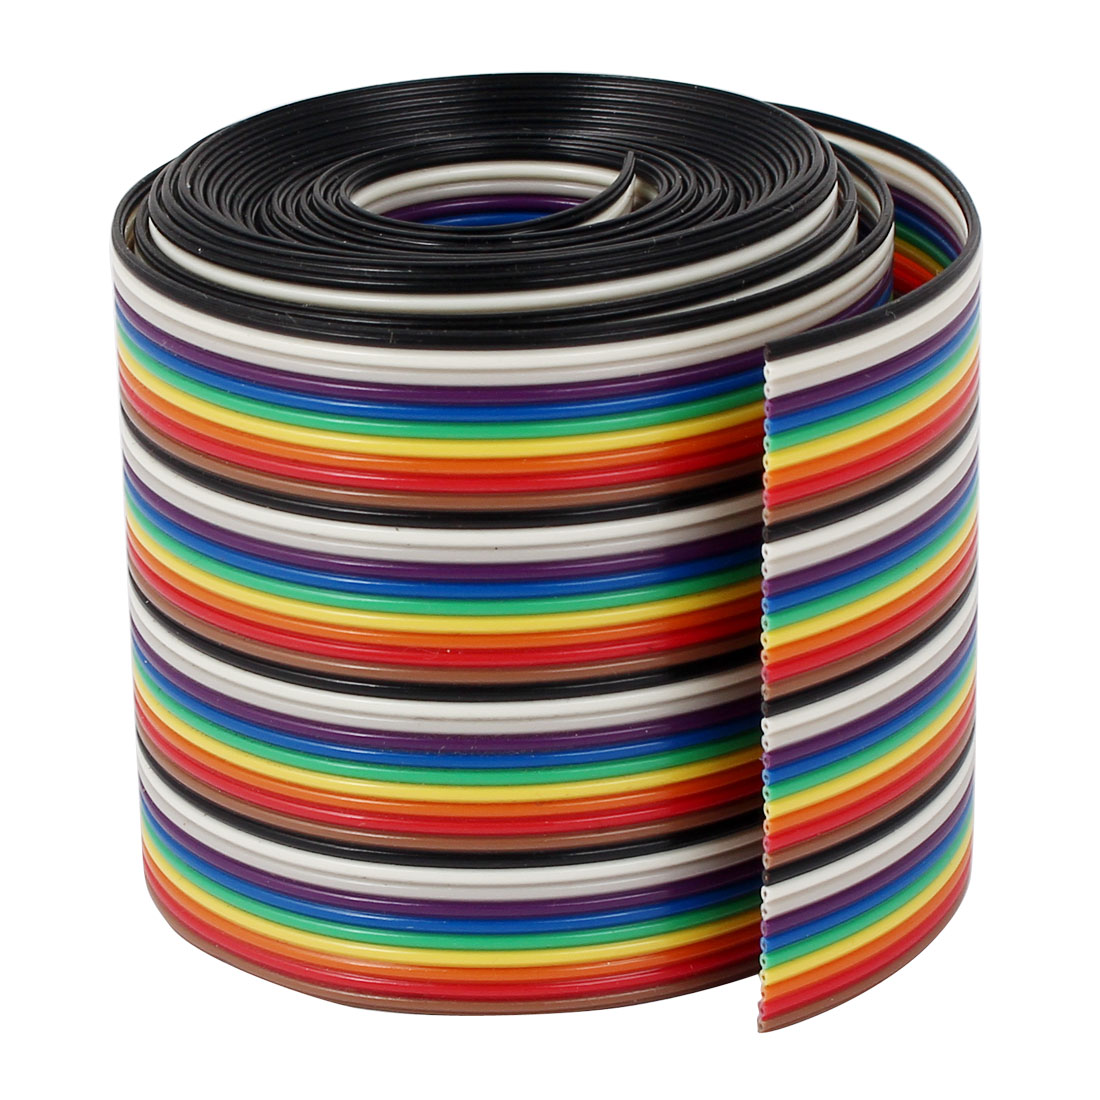 2 Meter 6.6ft 40 Way 40 pin Flat Color Rainbow Ribbon IDC Cable Wire Rainbow Cable